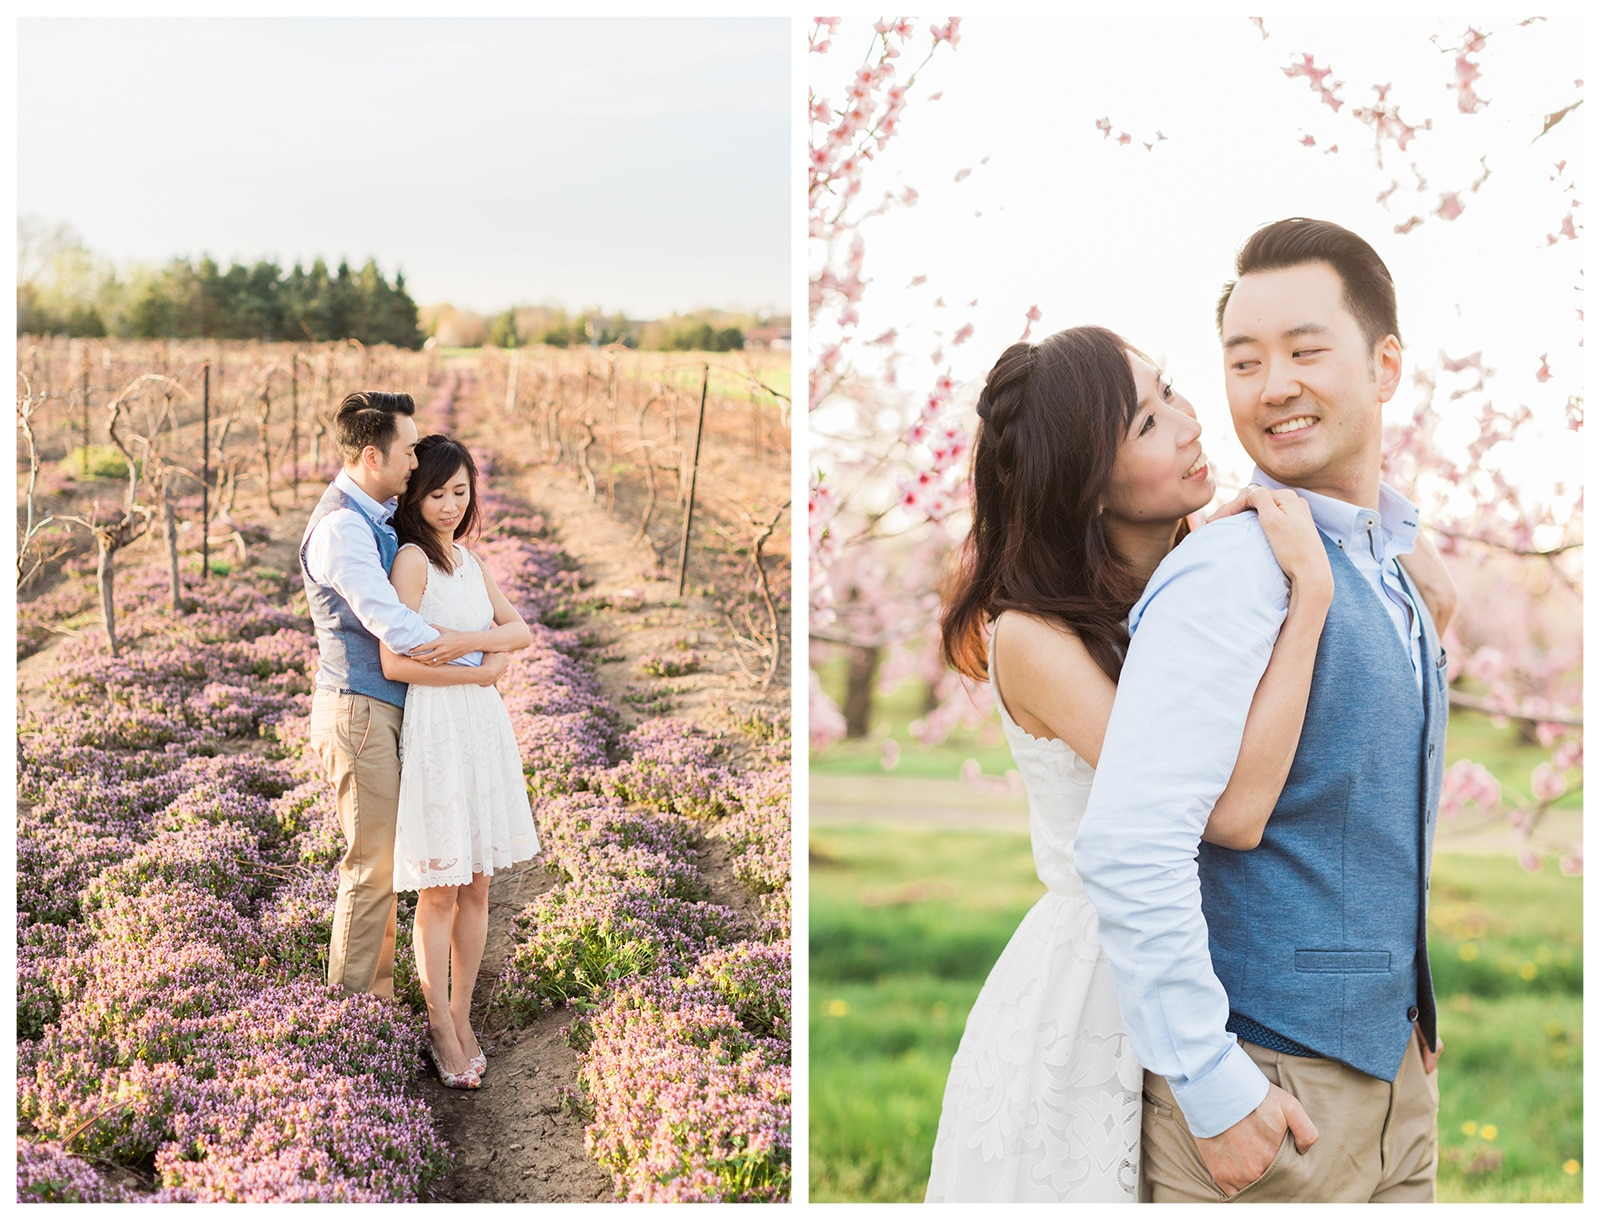 Niagara Romantic Spring Blossom Engagement Photos: Louisa + Jeff